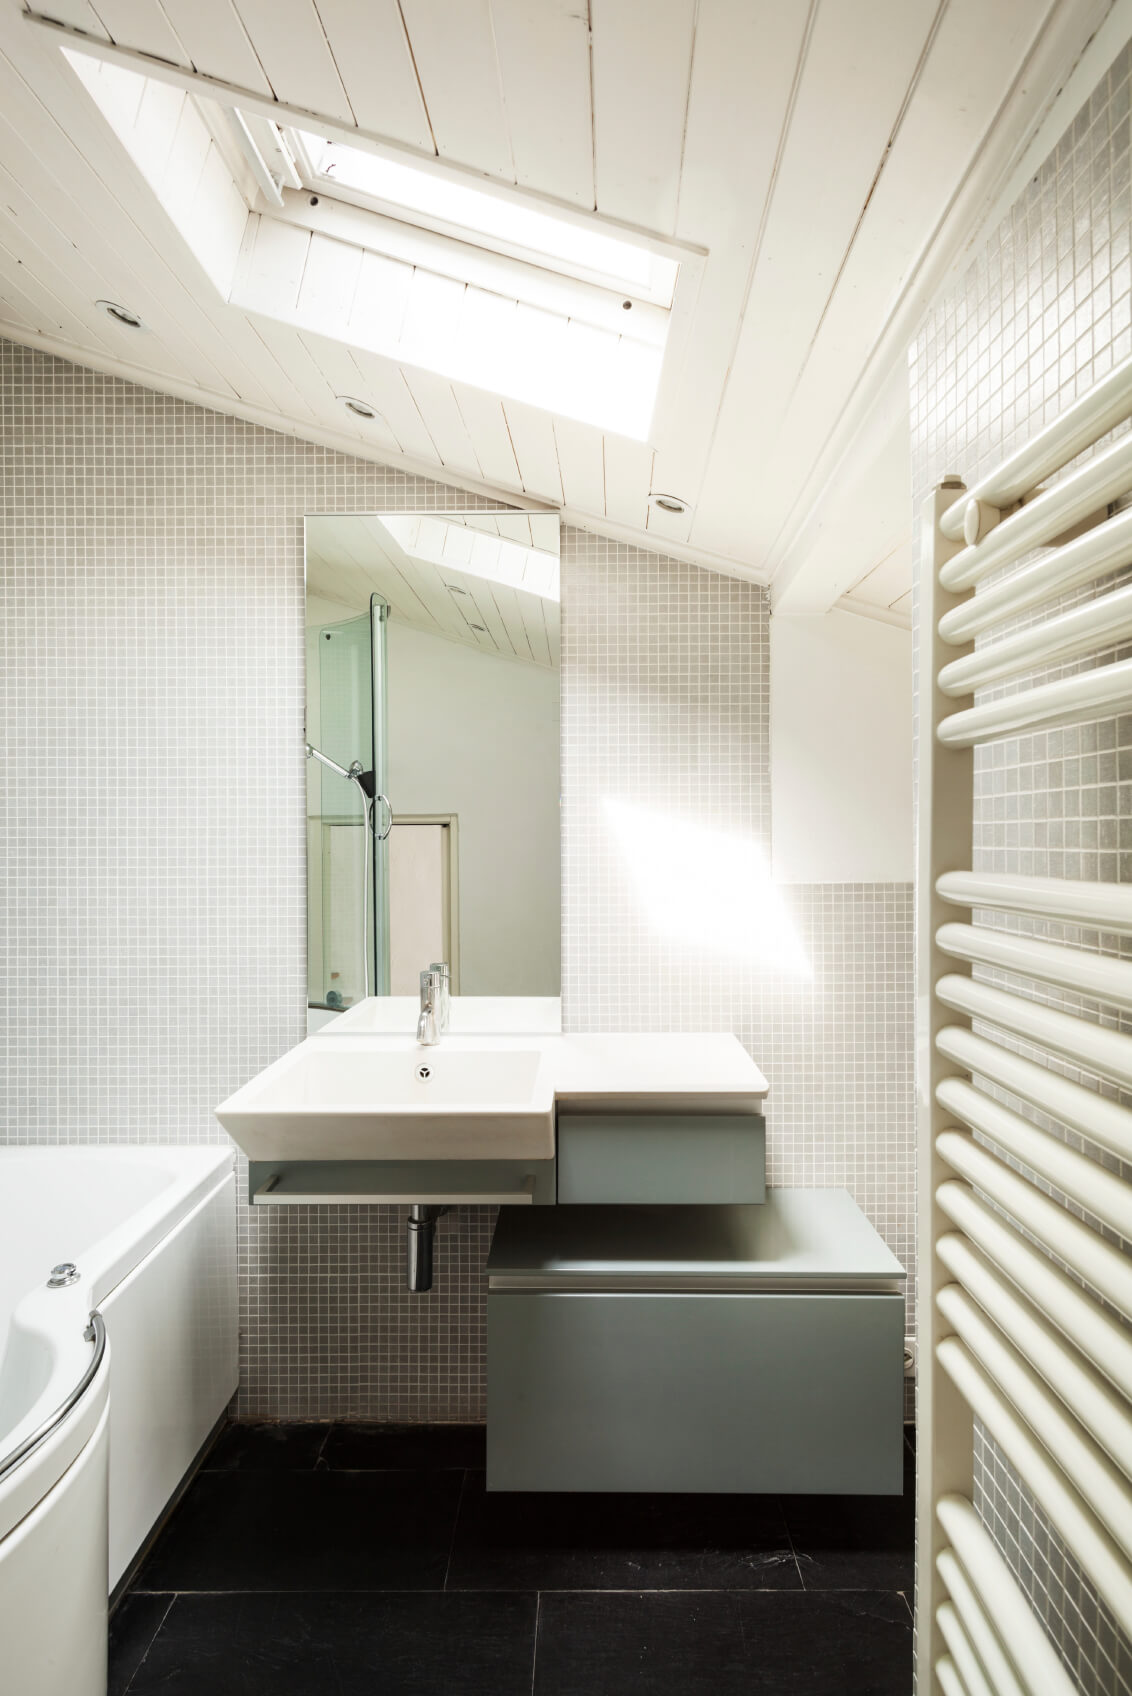 A close up of the sink area reveals a matte gray storage cabinet and additional detail of the skylight.